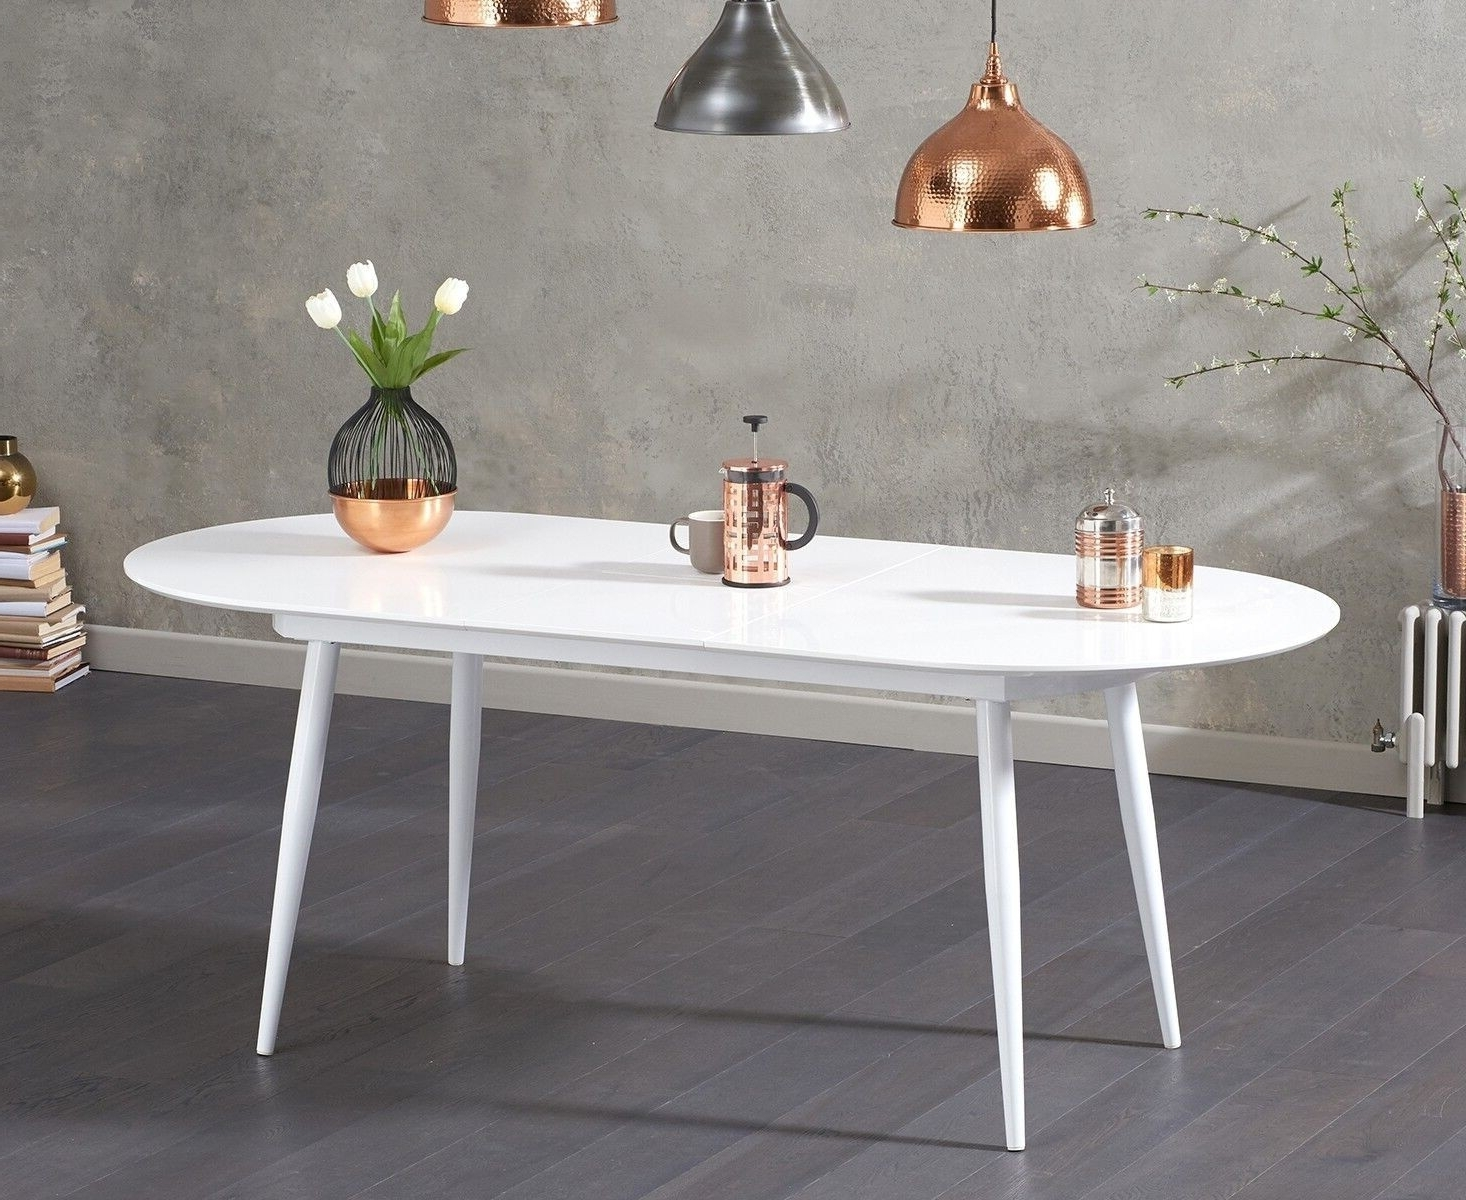 Most Recent Avril White Gloss Oval Extending Table 160Cm With Regard To White High Gloss Oval Dining Tables (View 11 of 25)